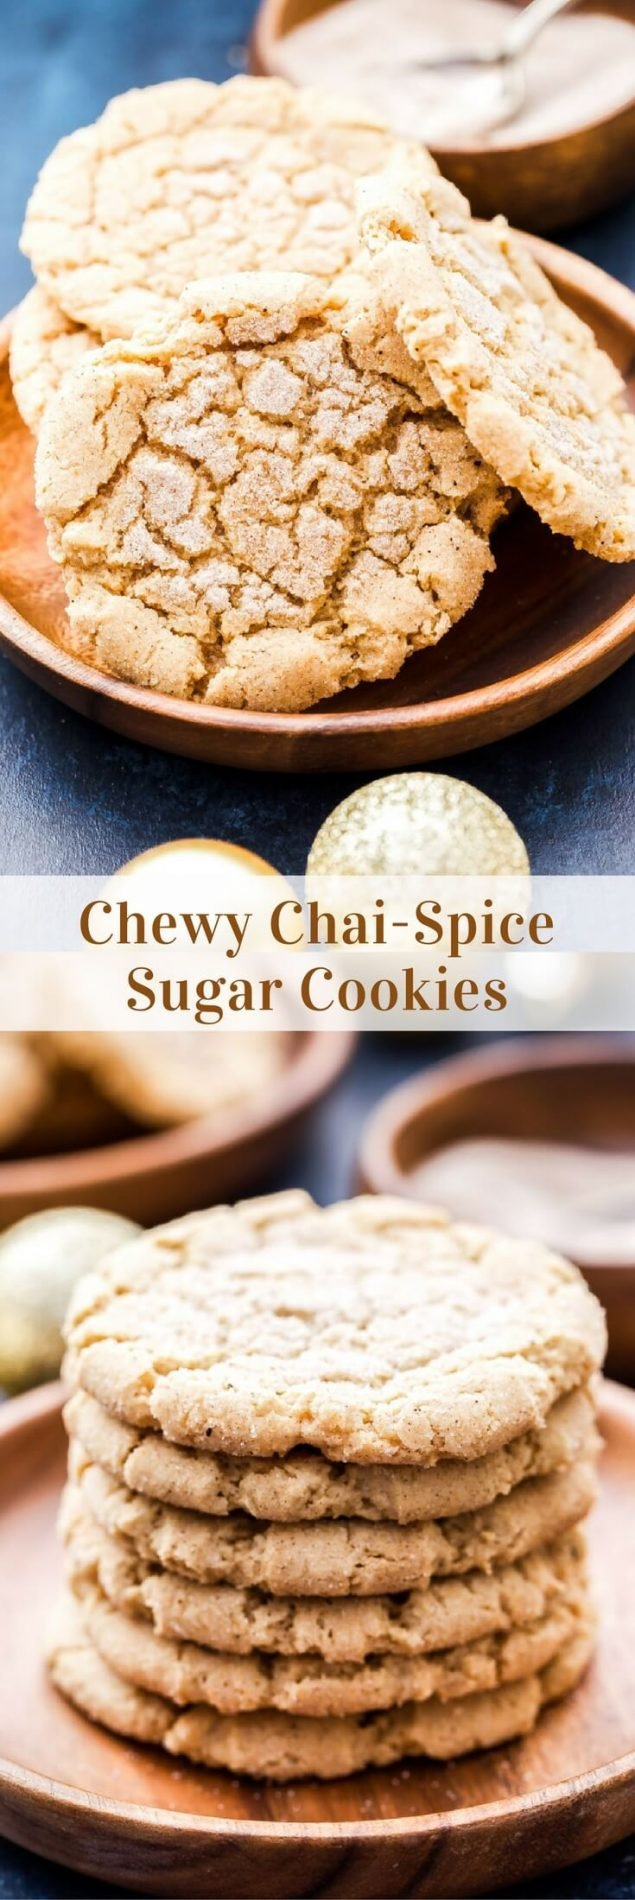 Chewy sugar cookies all dressed up for the holidays! Crisp edges, soft and chewy in the middle and plenty of chai-spice. These Chewy Chai-Spice Sugar Cookies are perfection!#cookies #christmascookies #chai #sugarcookies